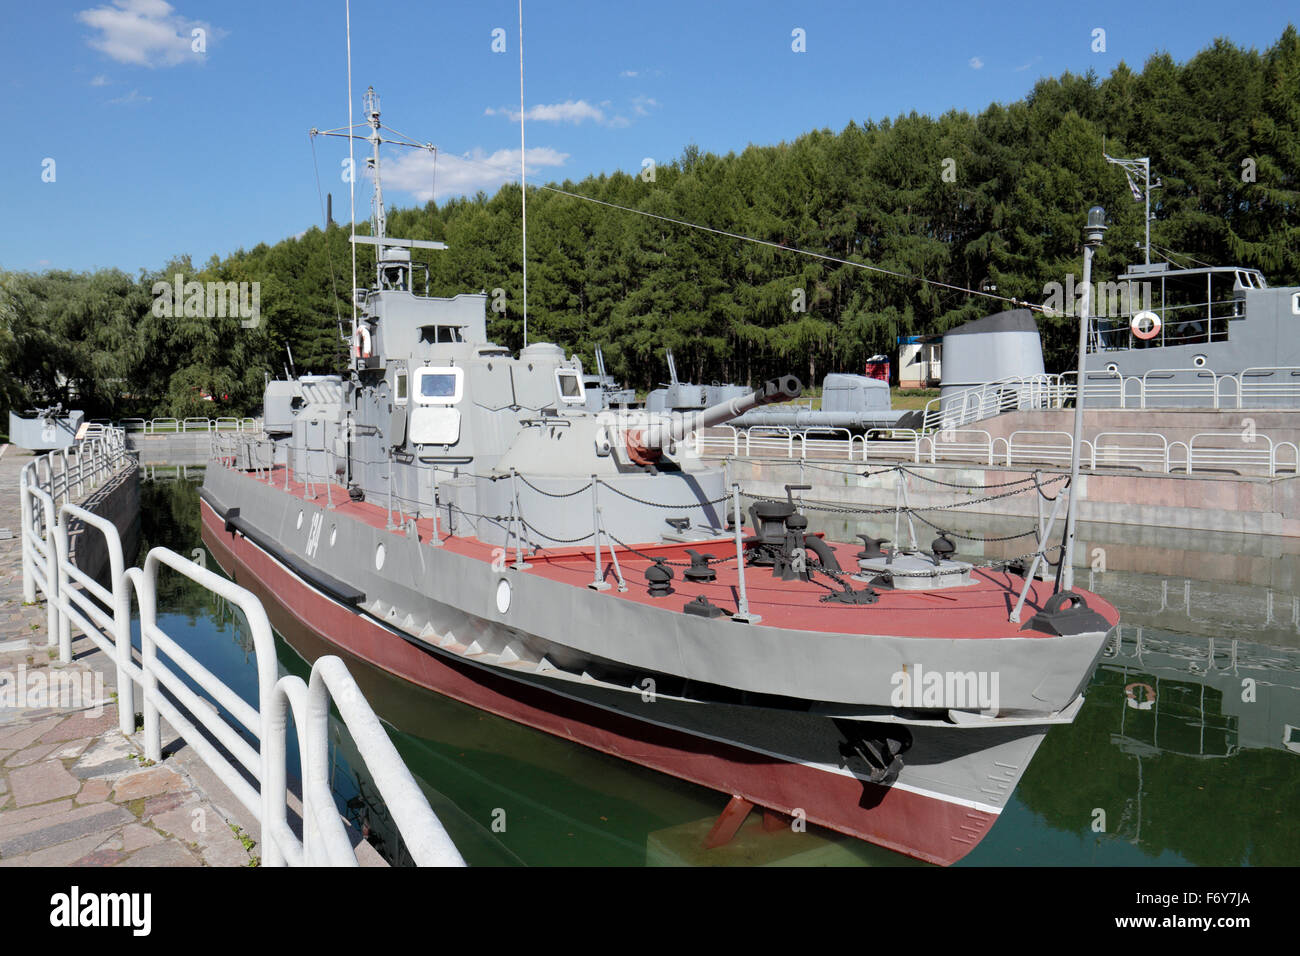 A Soviet Wwii River Patrol Boat In The Exposition Of